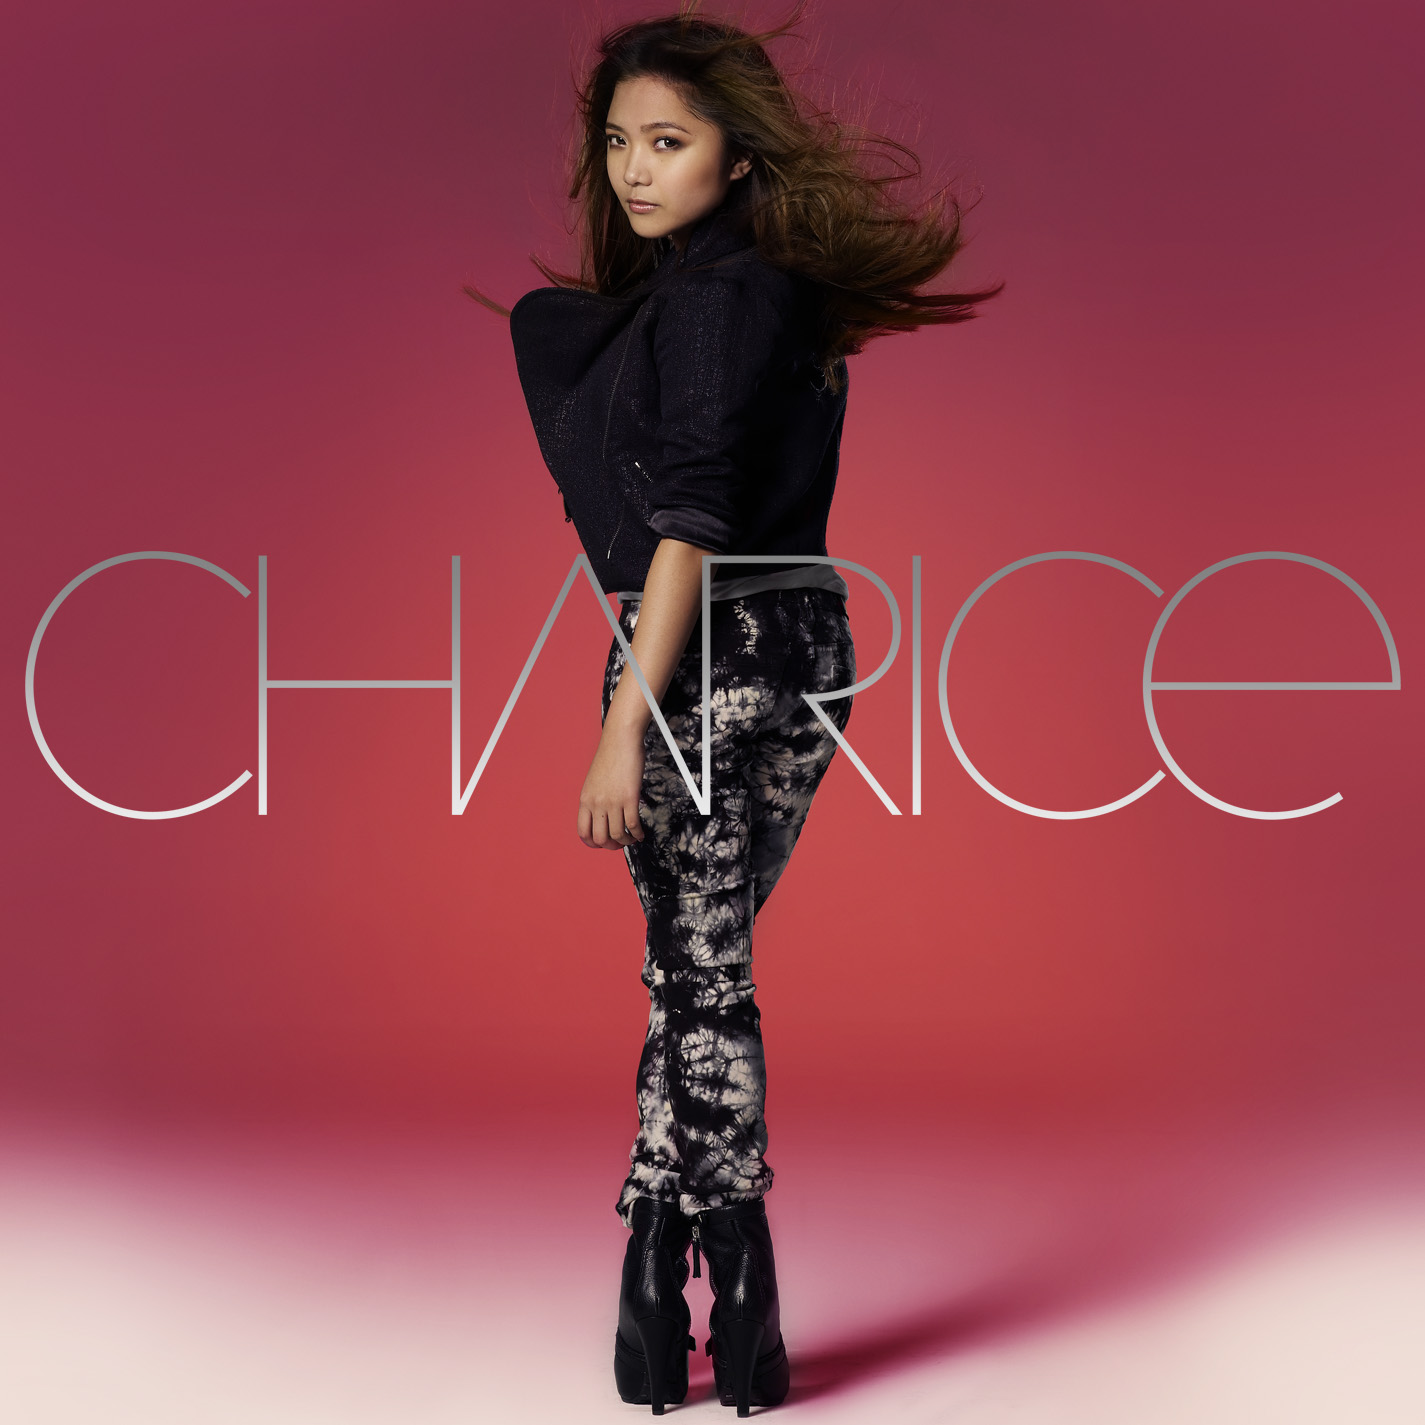 Charice & Grown Up Christmas List EP by Charice | The Reading Chronicle